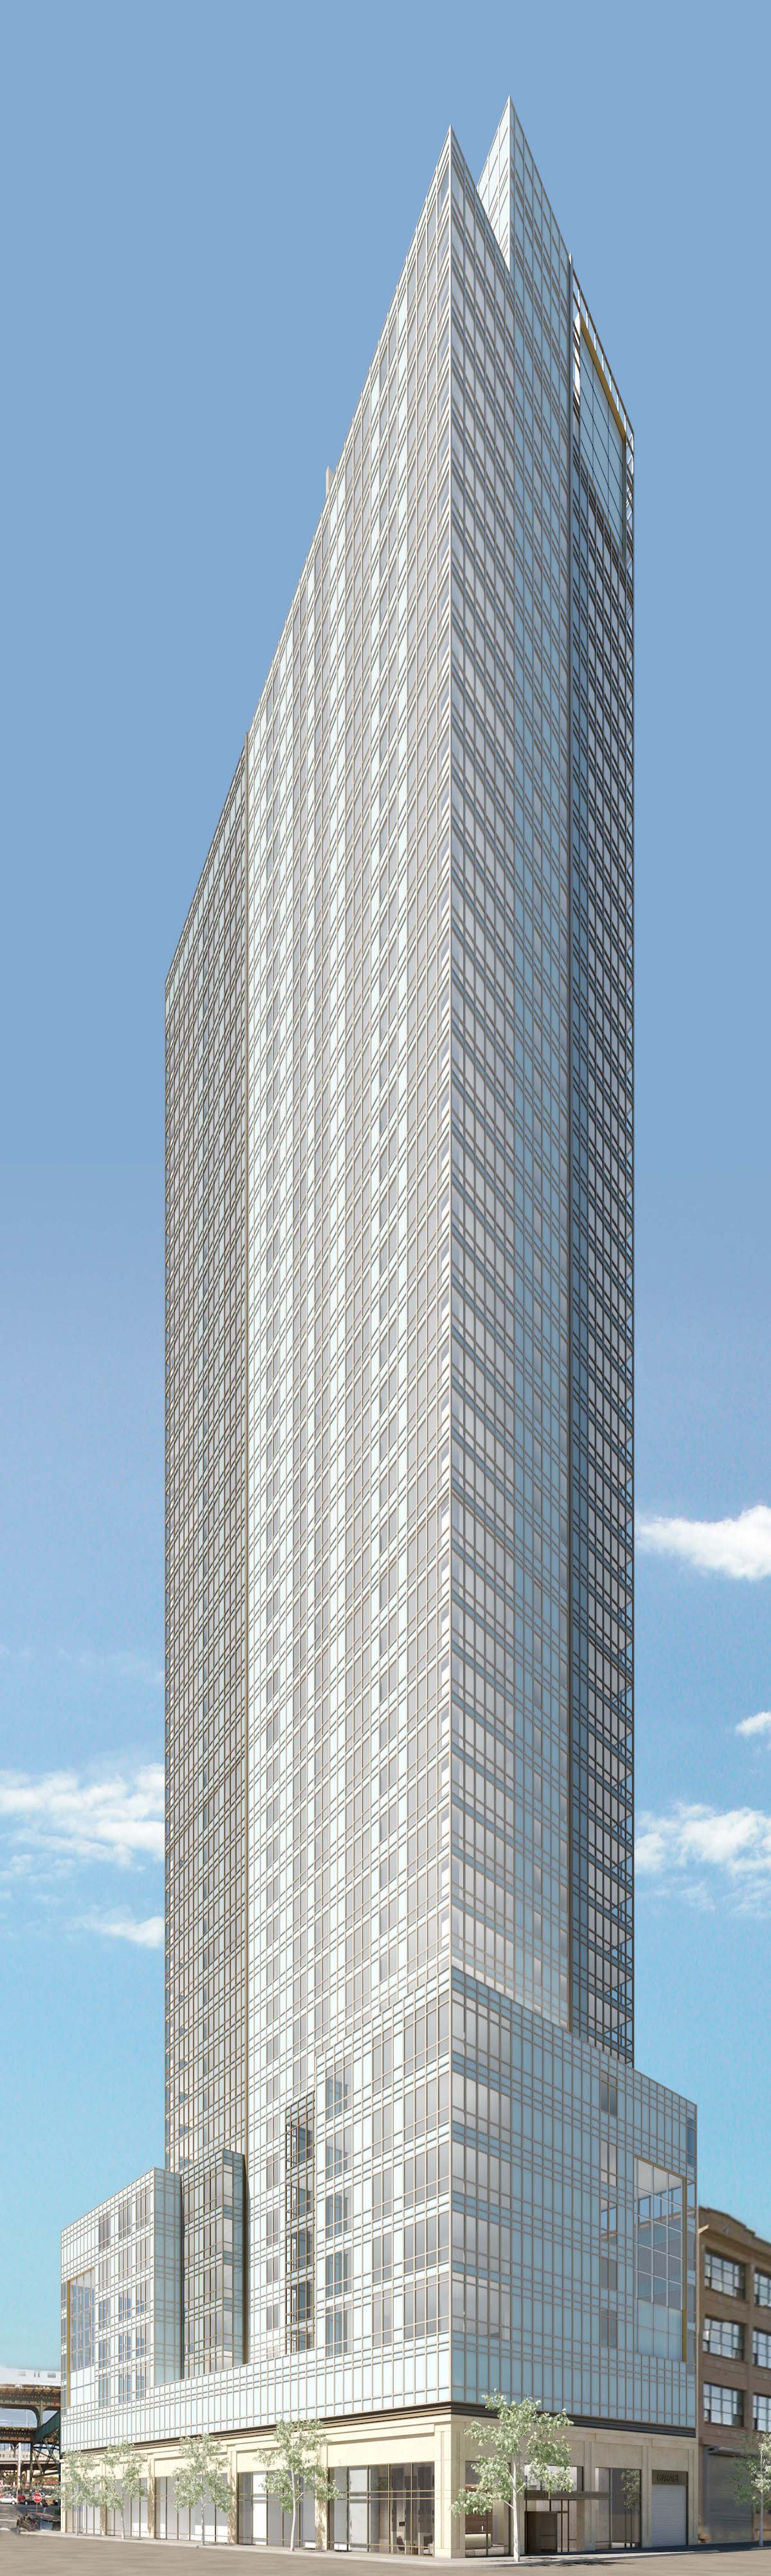 23-10 Queens Plaza South, rendering via Property Markets Group